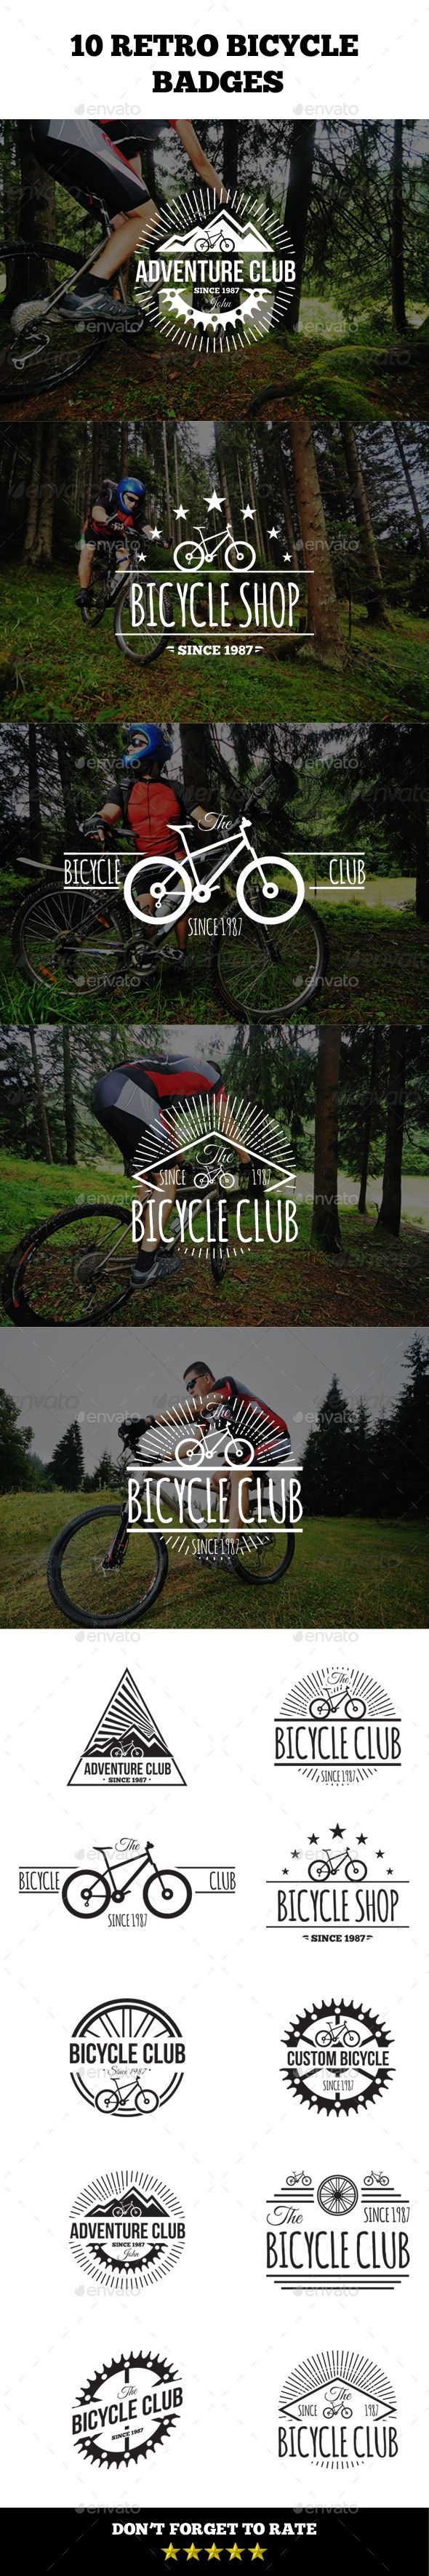 Retro Bicycle Badges Template Vector EPS, AI #design Download: http://graphicriver.net/item/retro-bicycle-badges/14385045?ref=ksioks